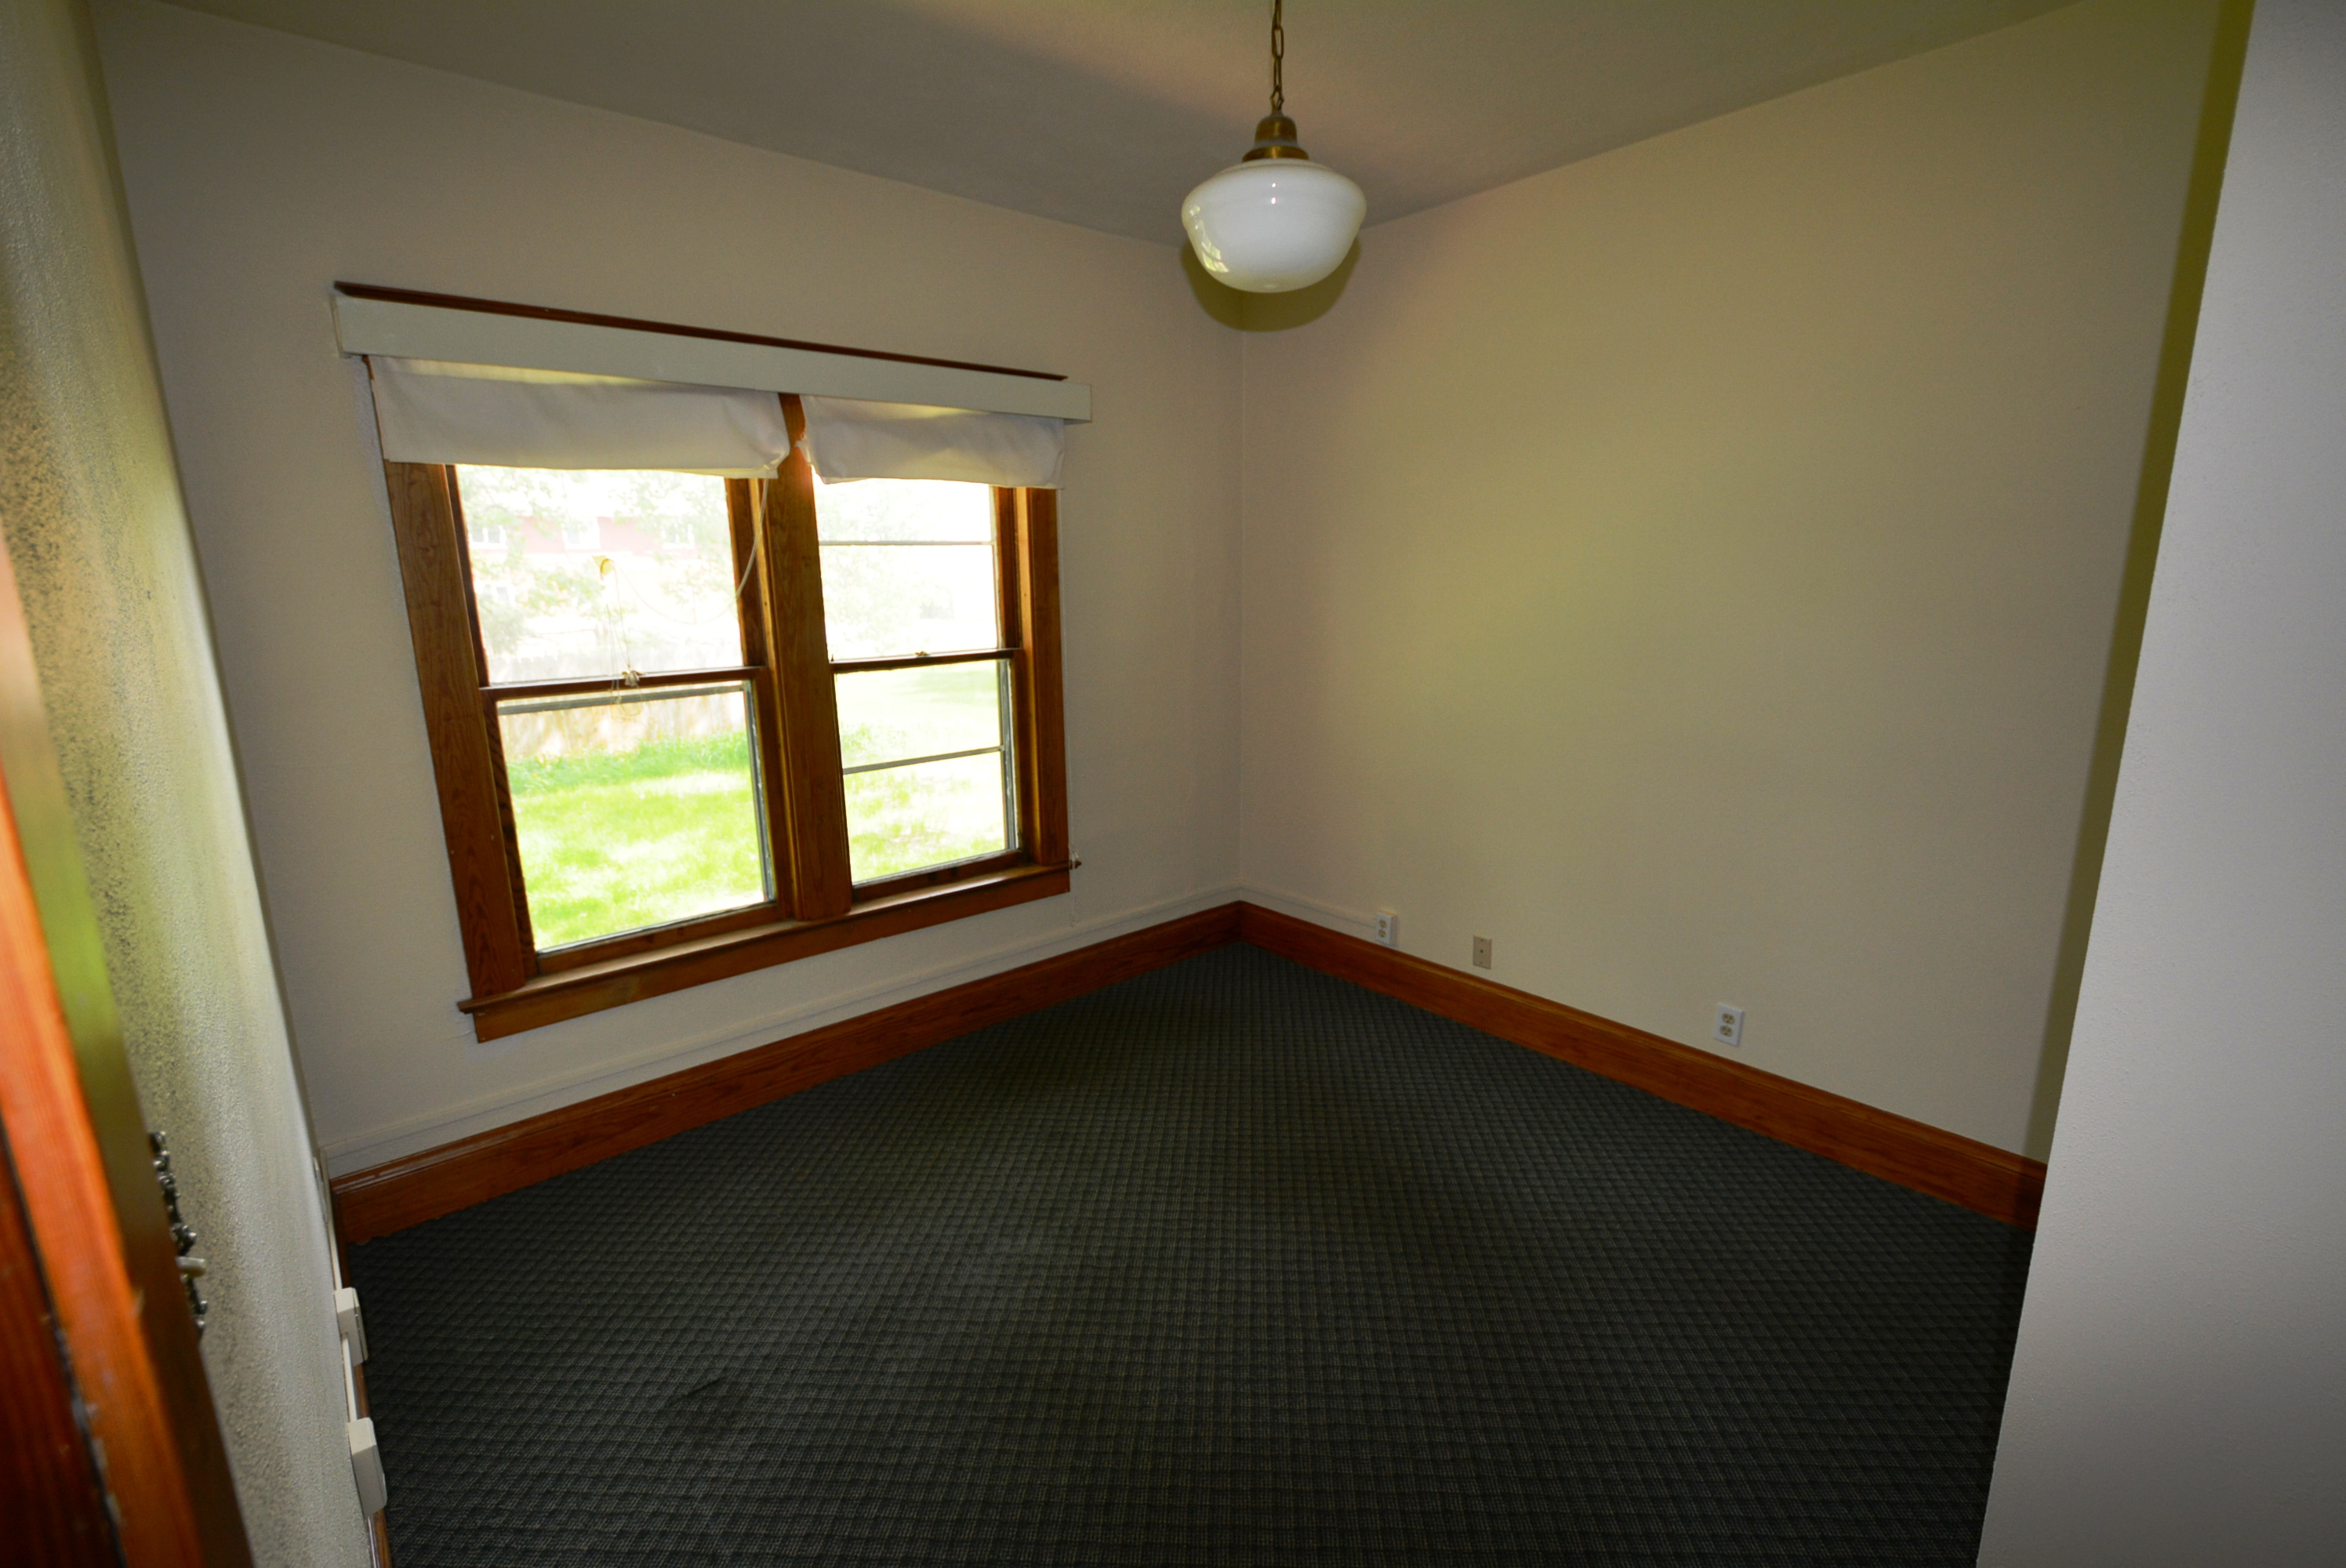 house for rent 222 15th av w menomonie wi 5 br 2 ba close to uw stout bedroom bedroom of 5 bedroom house for rent